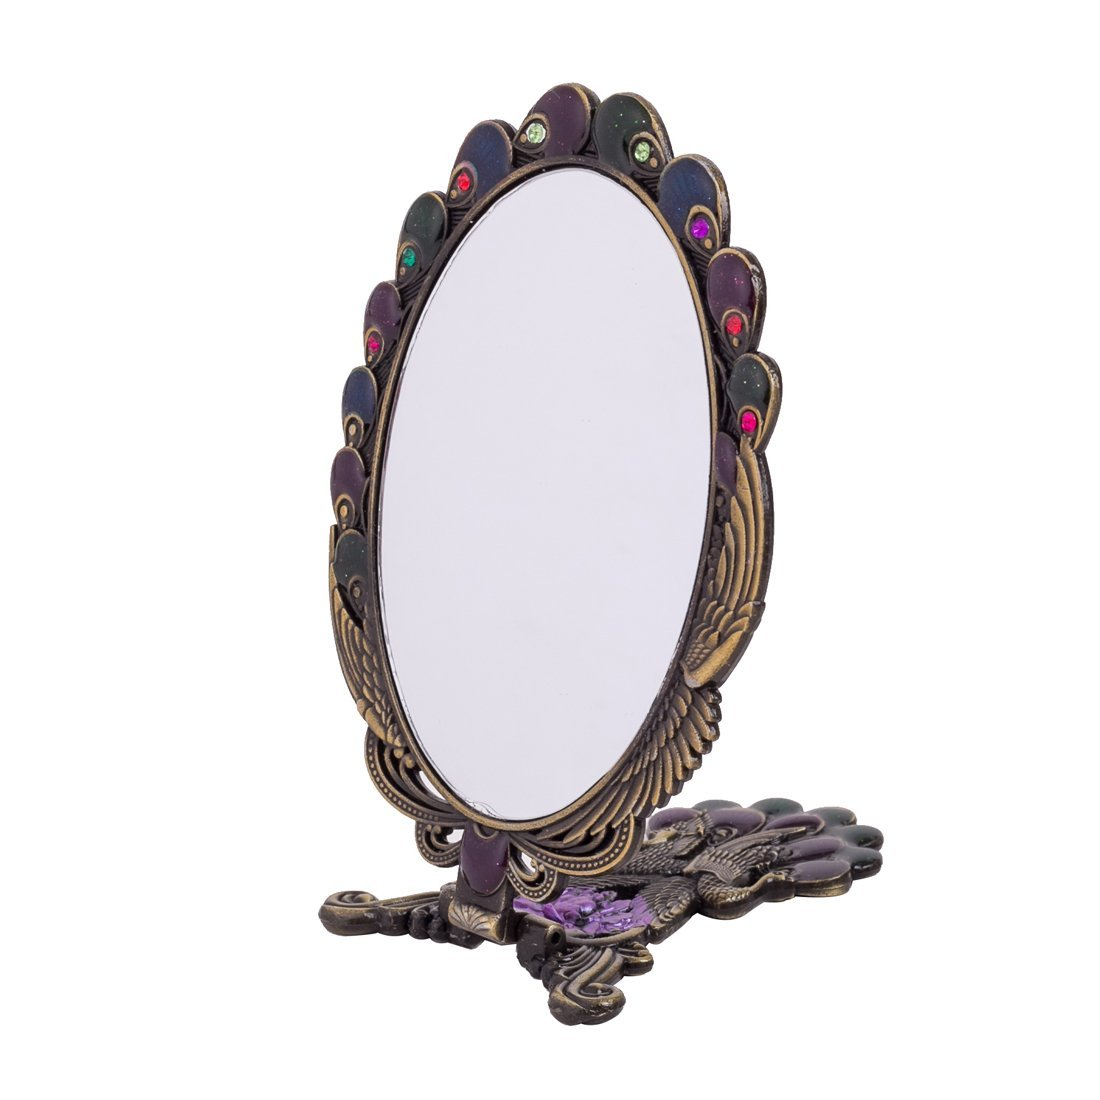 Moiom Vintage Style Metal Foldable Oval Peacock Flower